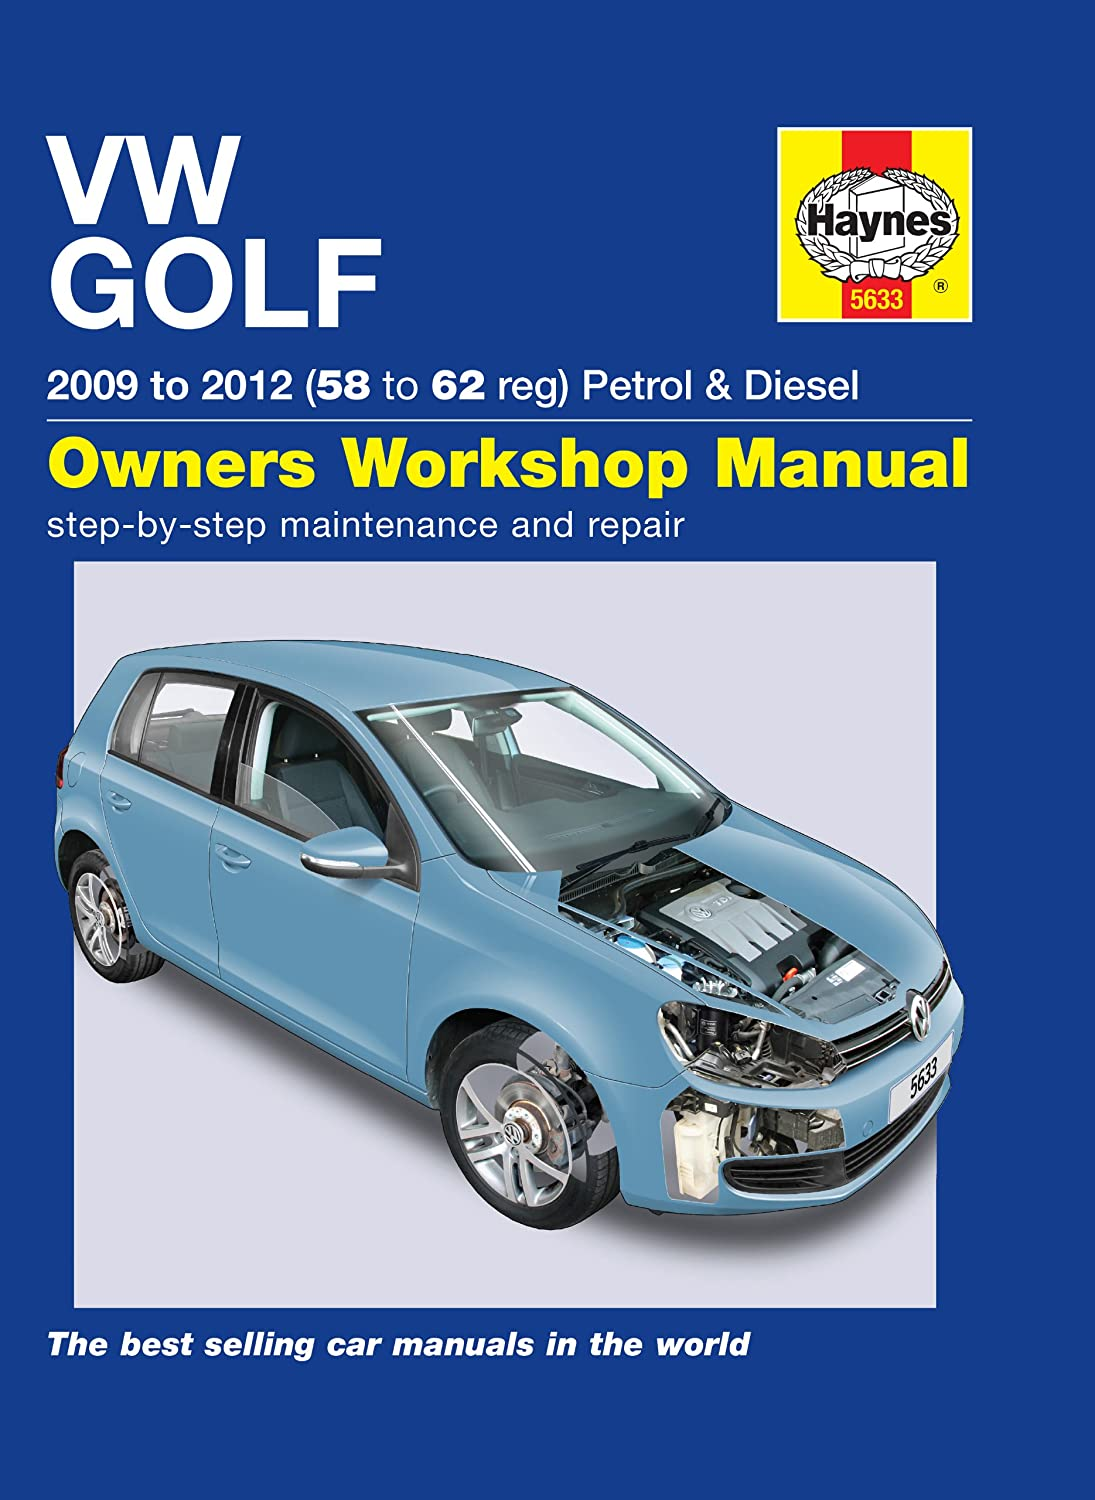 vw golf jetta service and repair manual 2004 2009 service rh amazon co uk 1998 VW Golf 1998 VW Golf